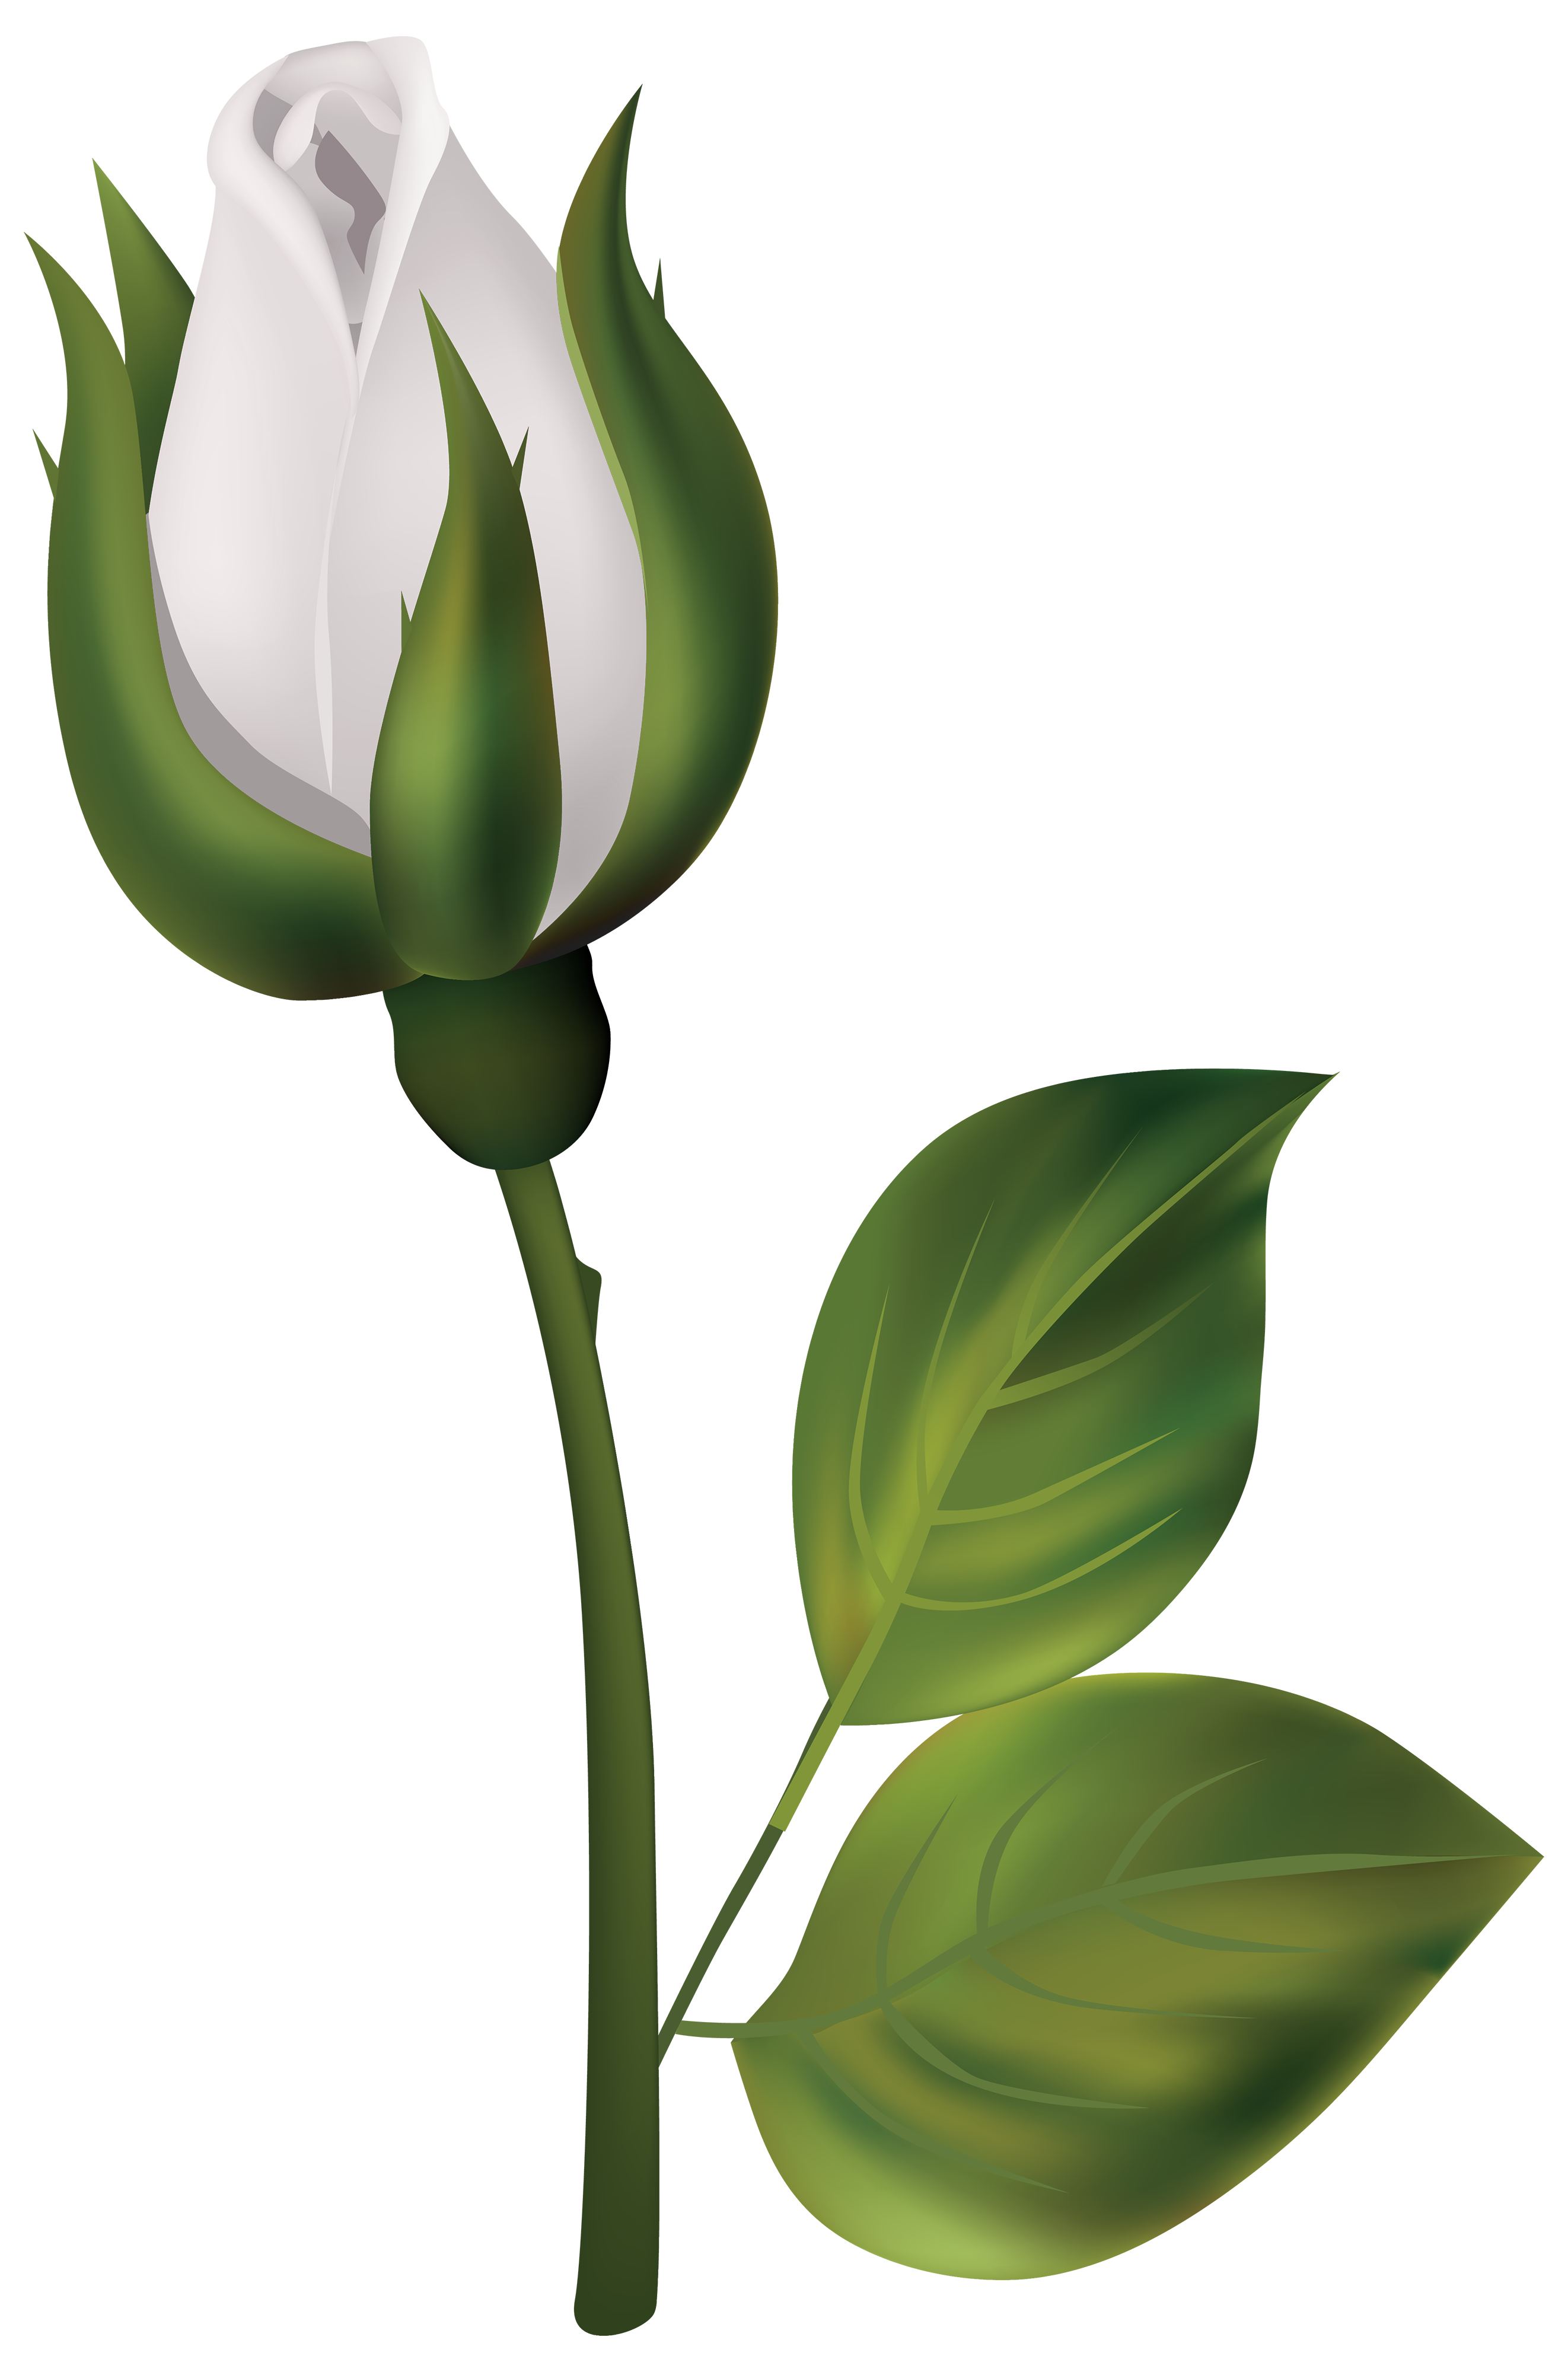 Flower clipart black and white rose vector free stock White Rose Bud PNG Clipart - Best WEB Clipart vector free stock